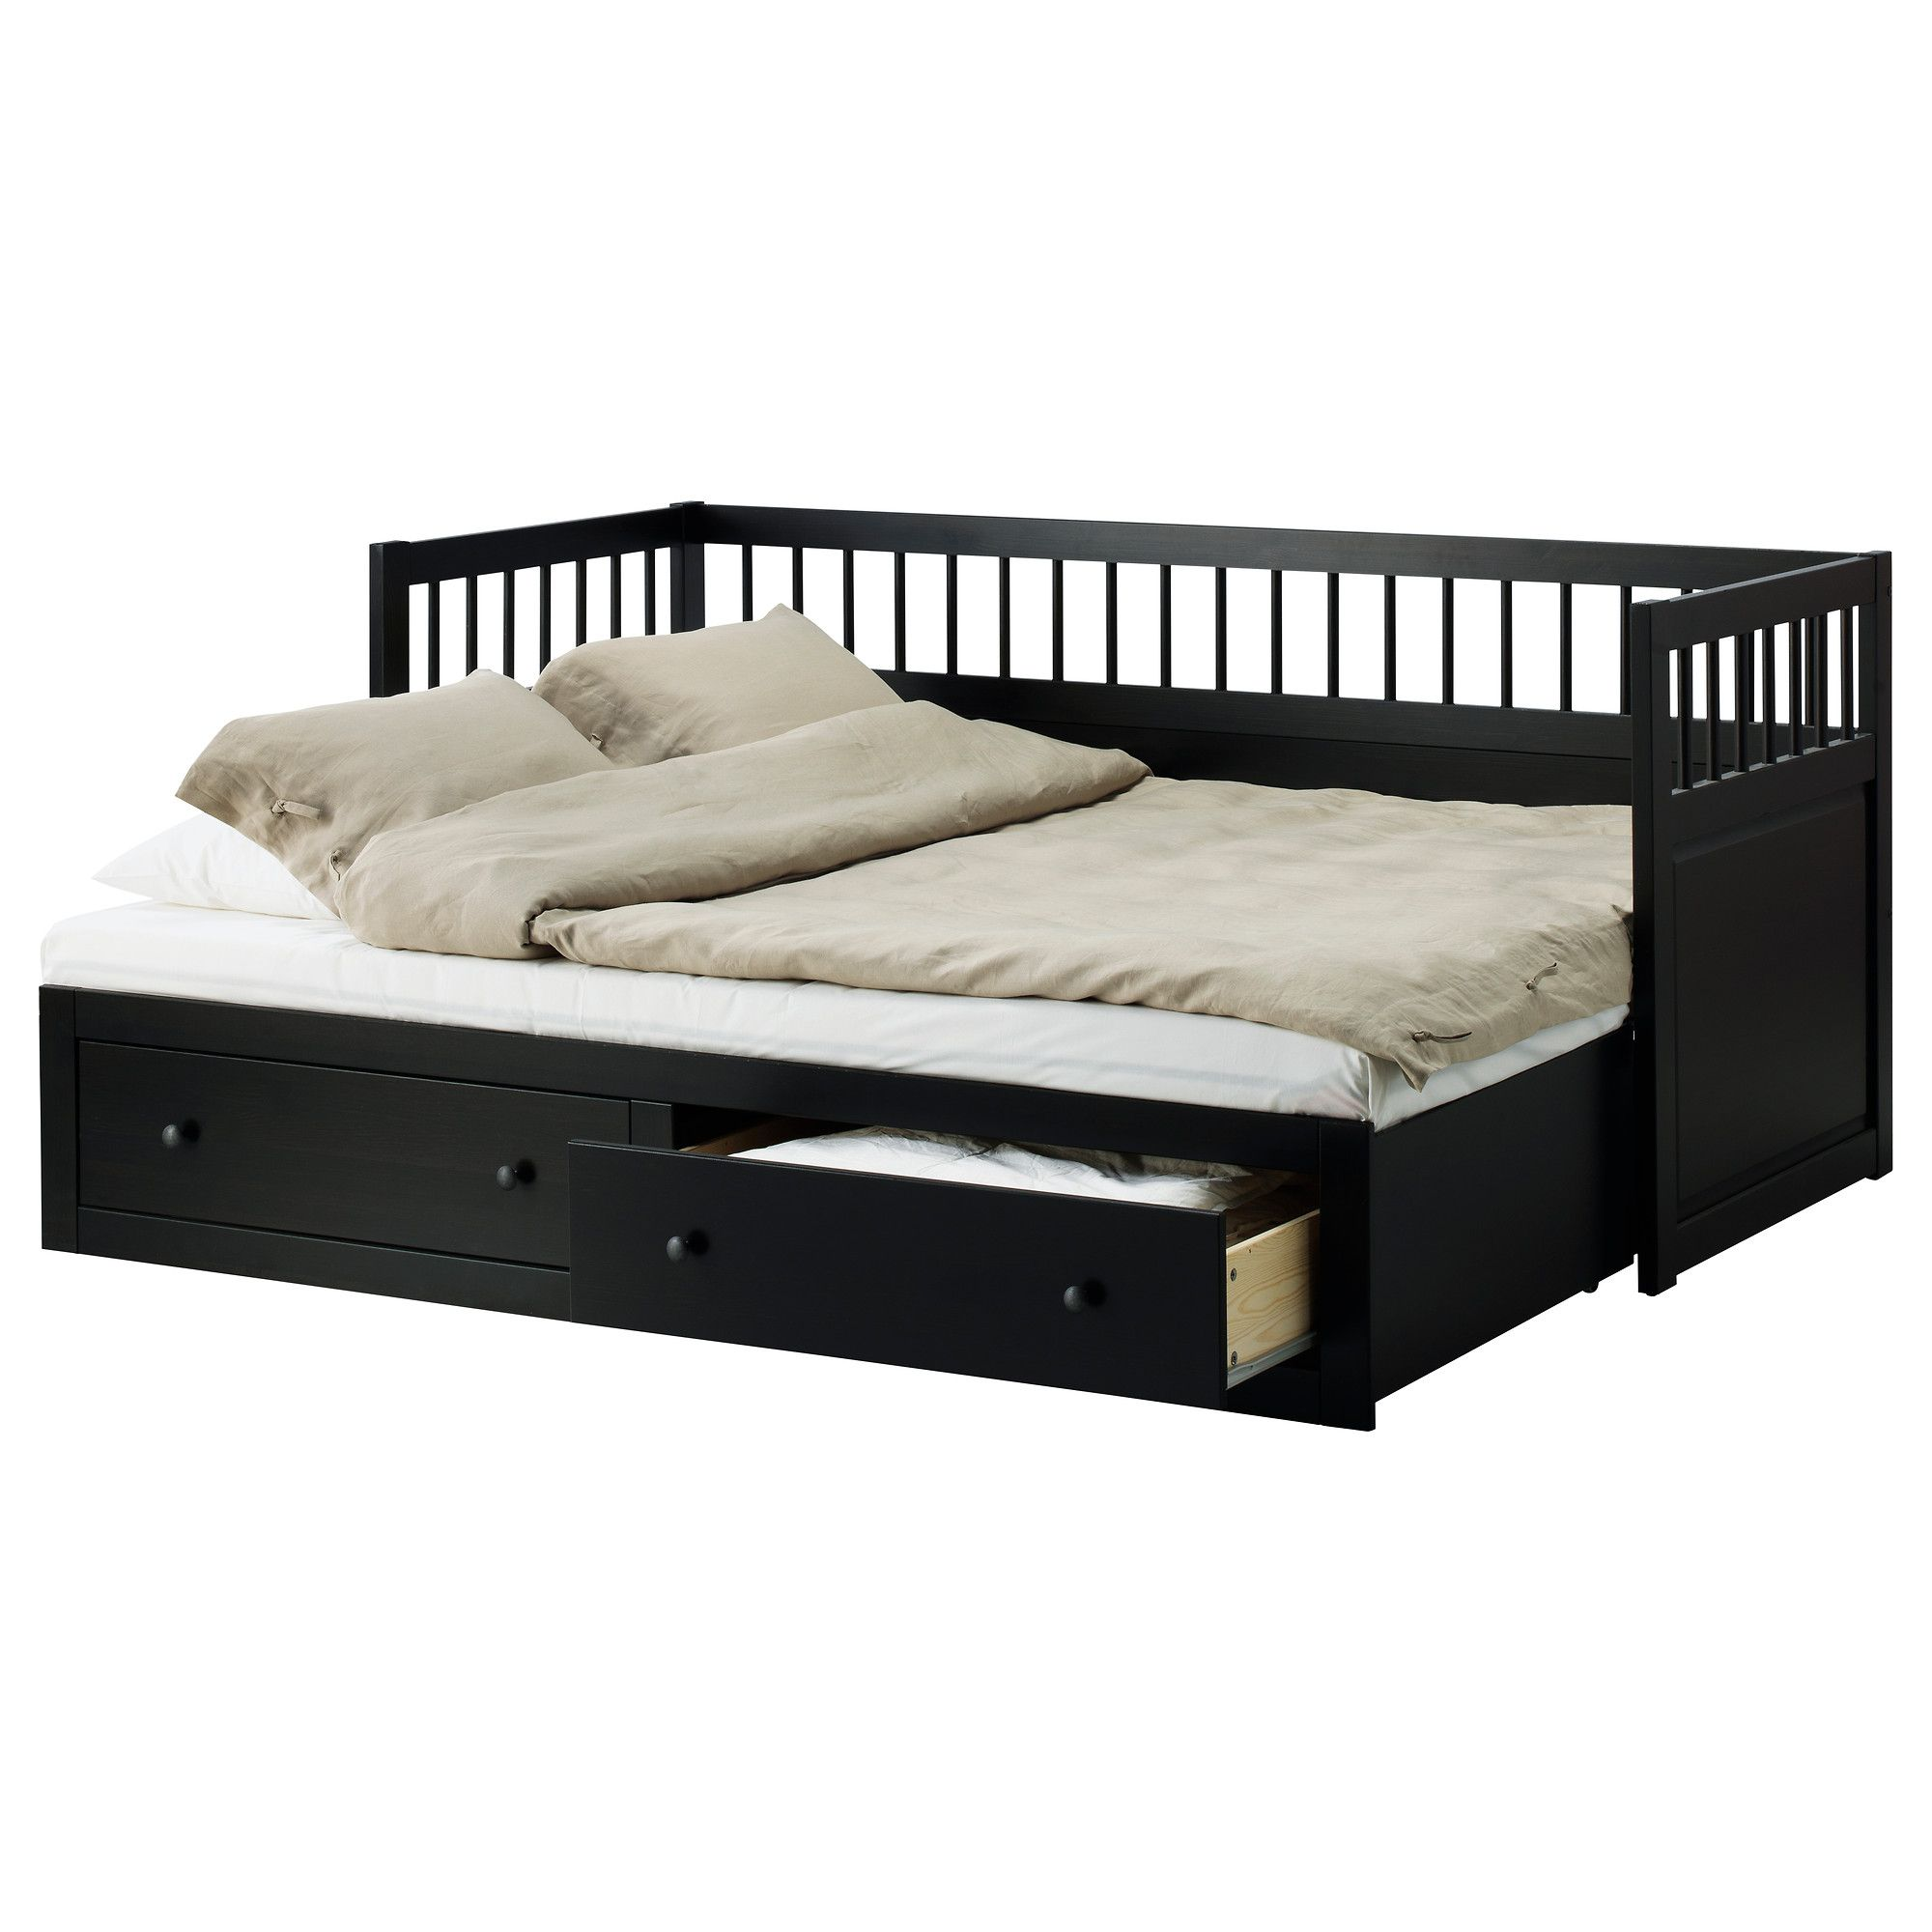 Best Awesome Wooden Painted Black Best Ikea Daybed With Trundle 640 x 480